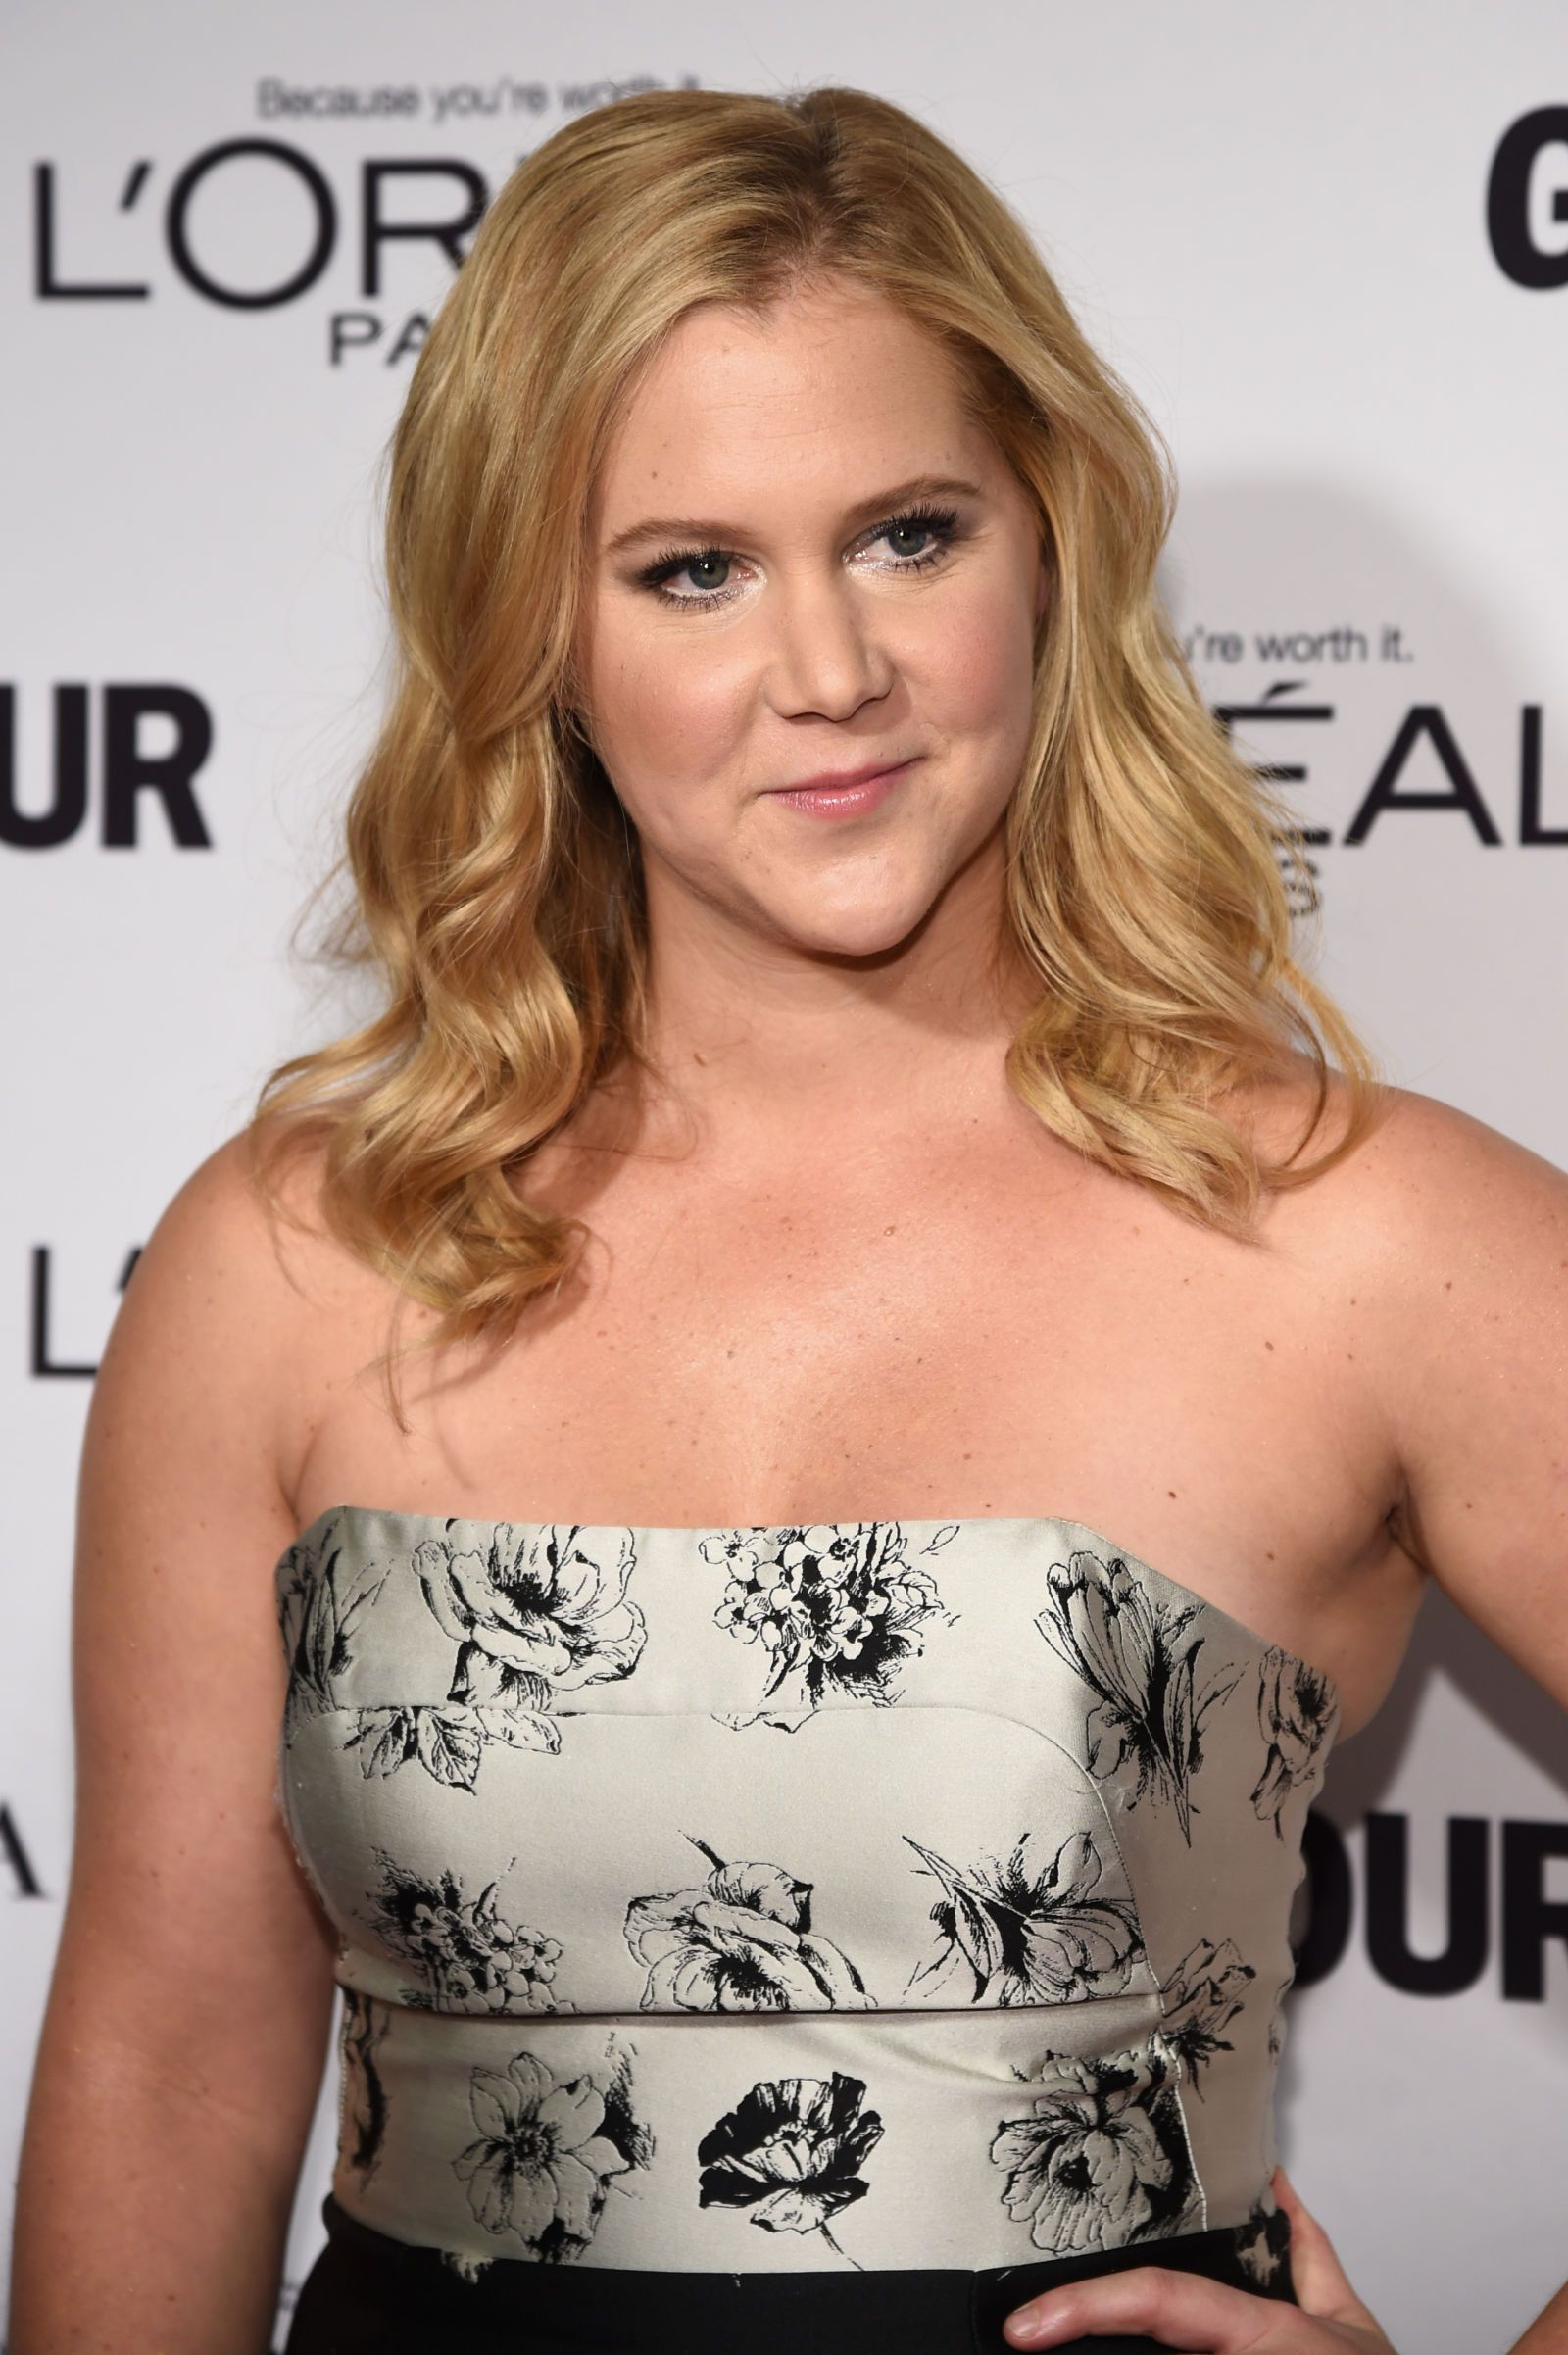 """After a critic called her """"chubby"""" and not conventionally attractive (""""there's no way she'd be an object of heated romance in the real world"""", which, okaydude), the comedian and actress had this epicness to say:""""From the bottom of my heart—I could not care less.""""   - MarieClaire.com"""